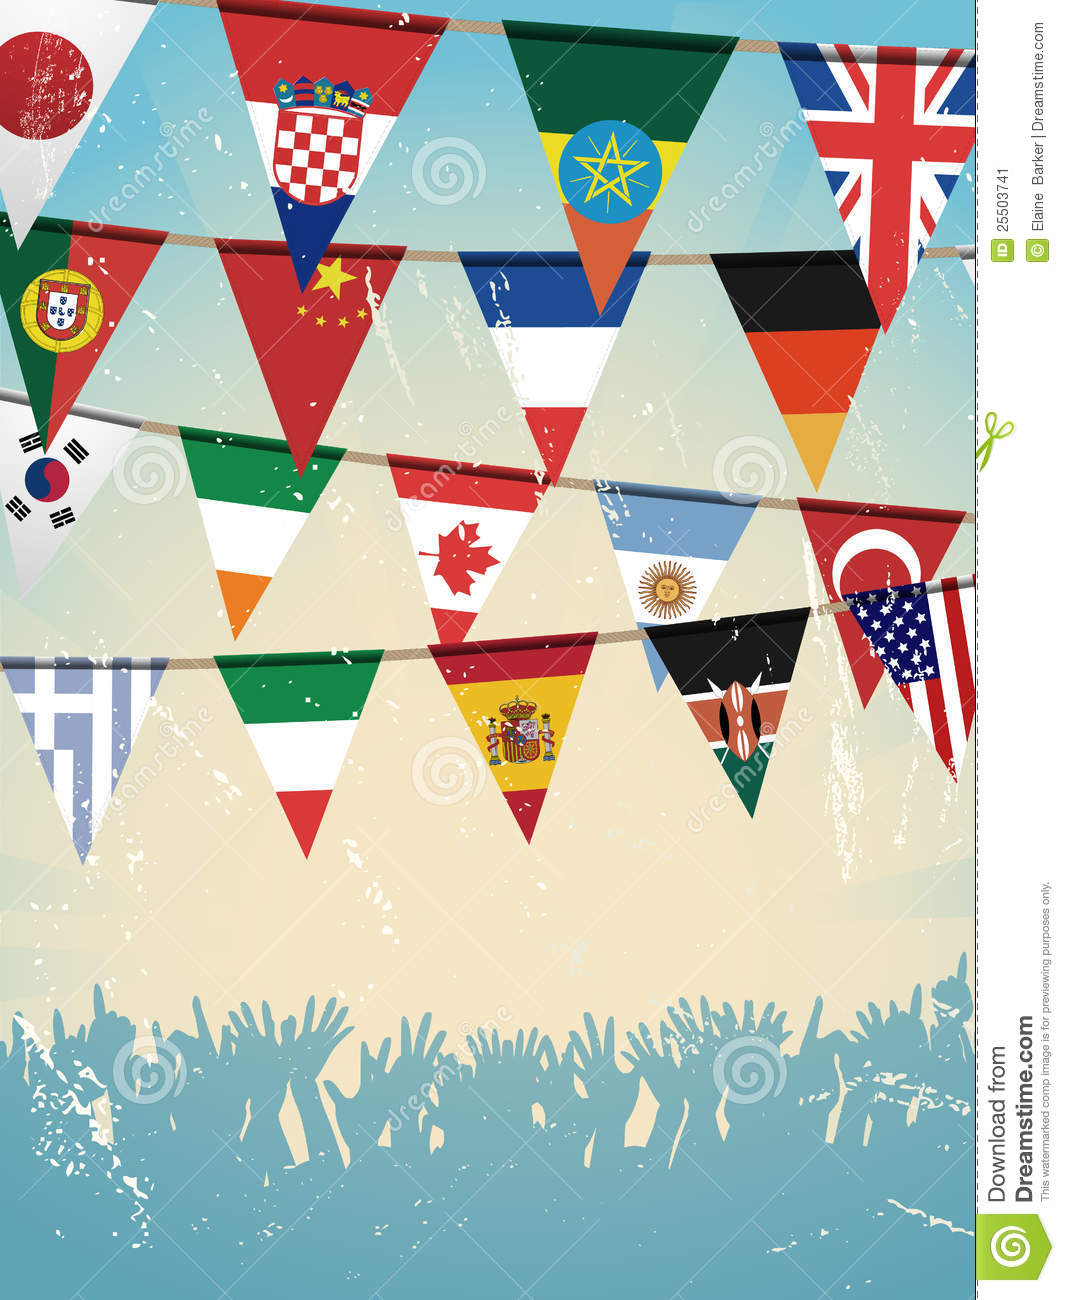 International flag bunting clipart.